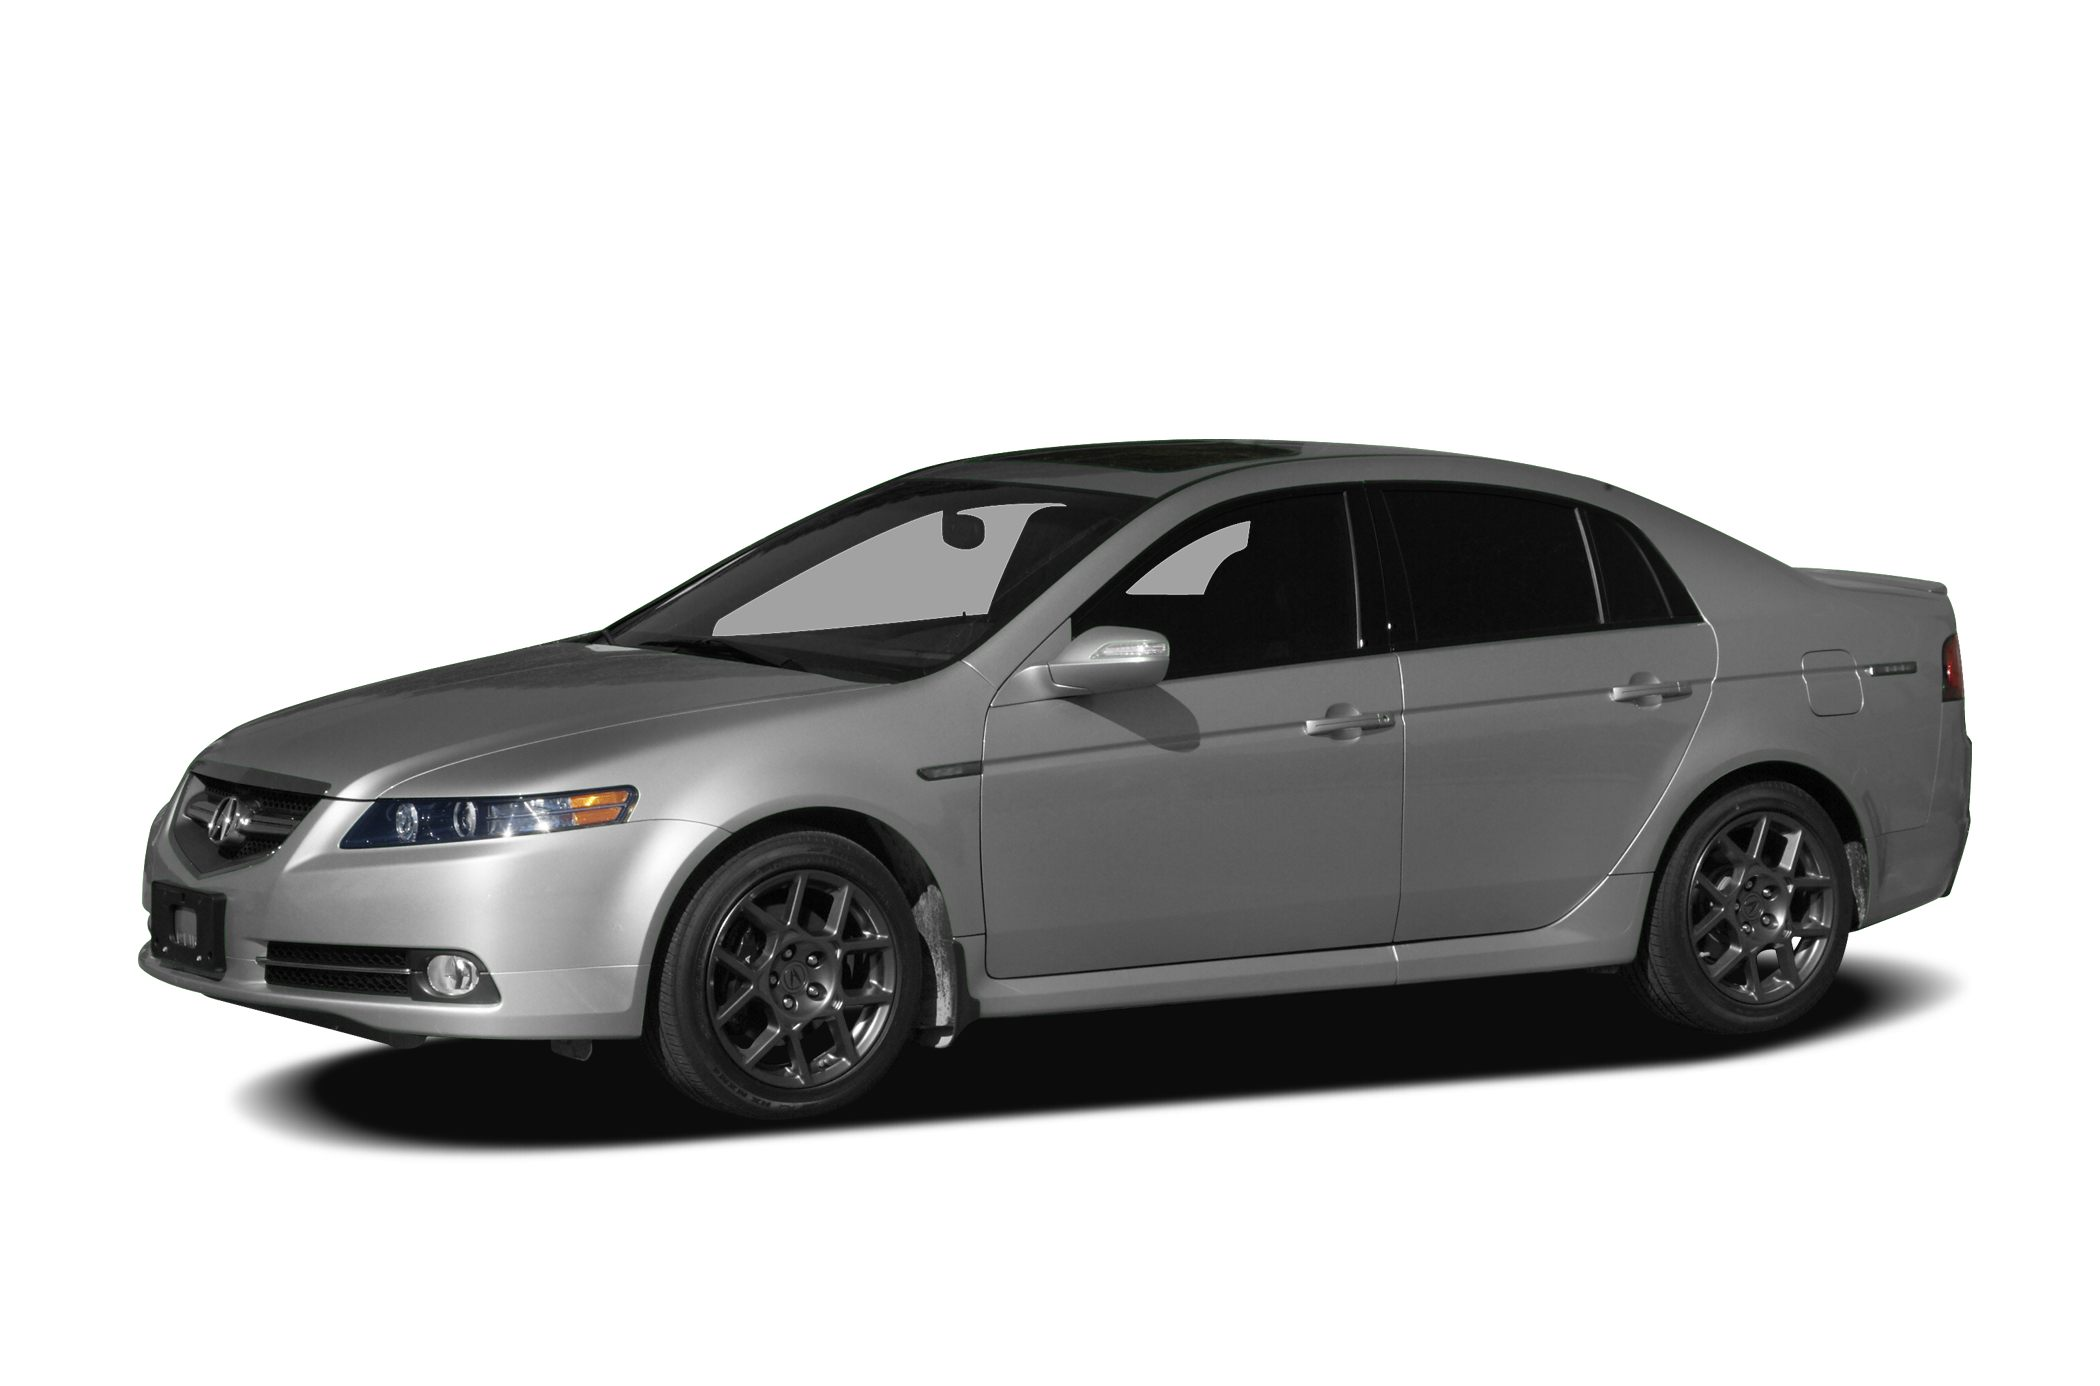 2007 Acura TL Specs and Prices